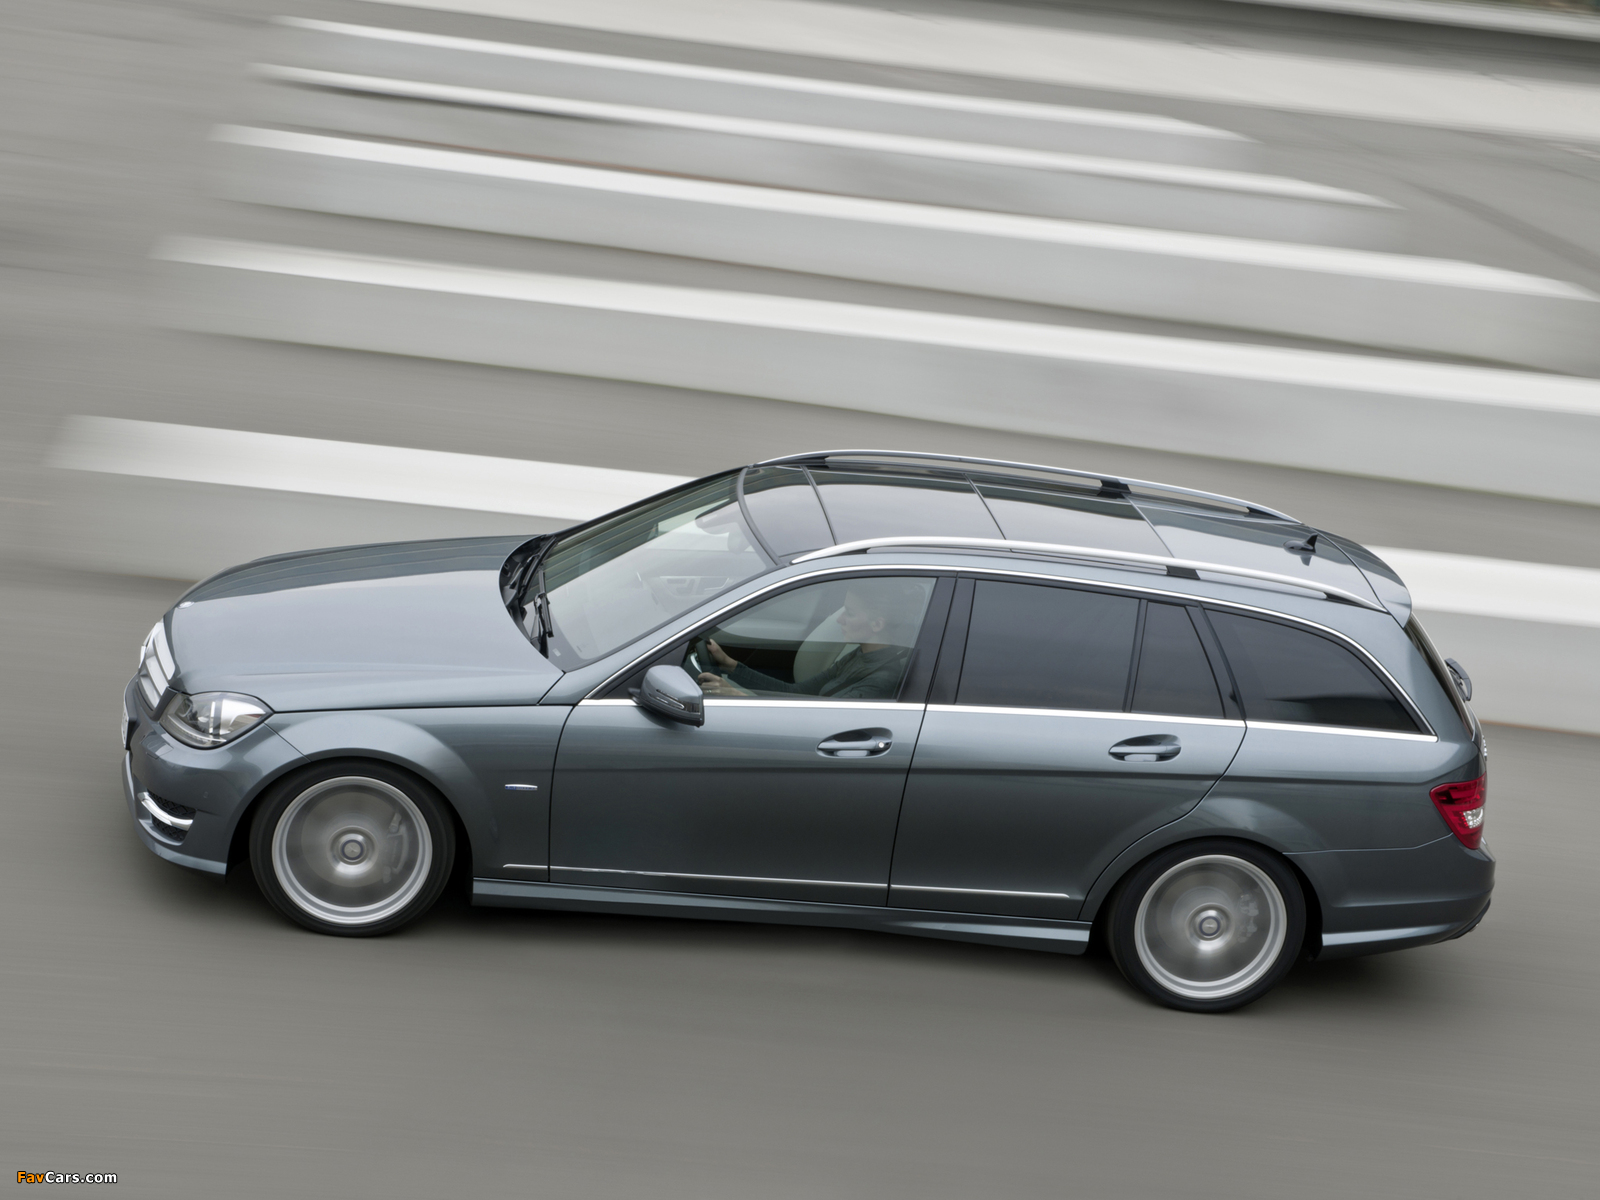 Mercedes-Benz C 350 CDI 4MATIC AMG Sports Package Estate (S204) 2011 photos (1600 x 1200)